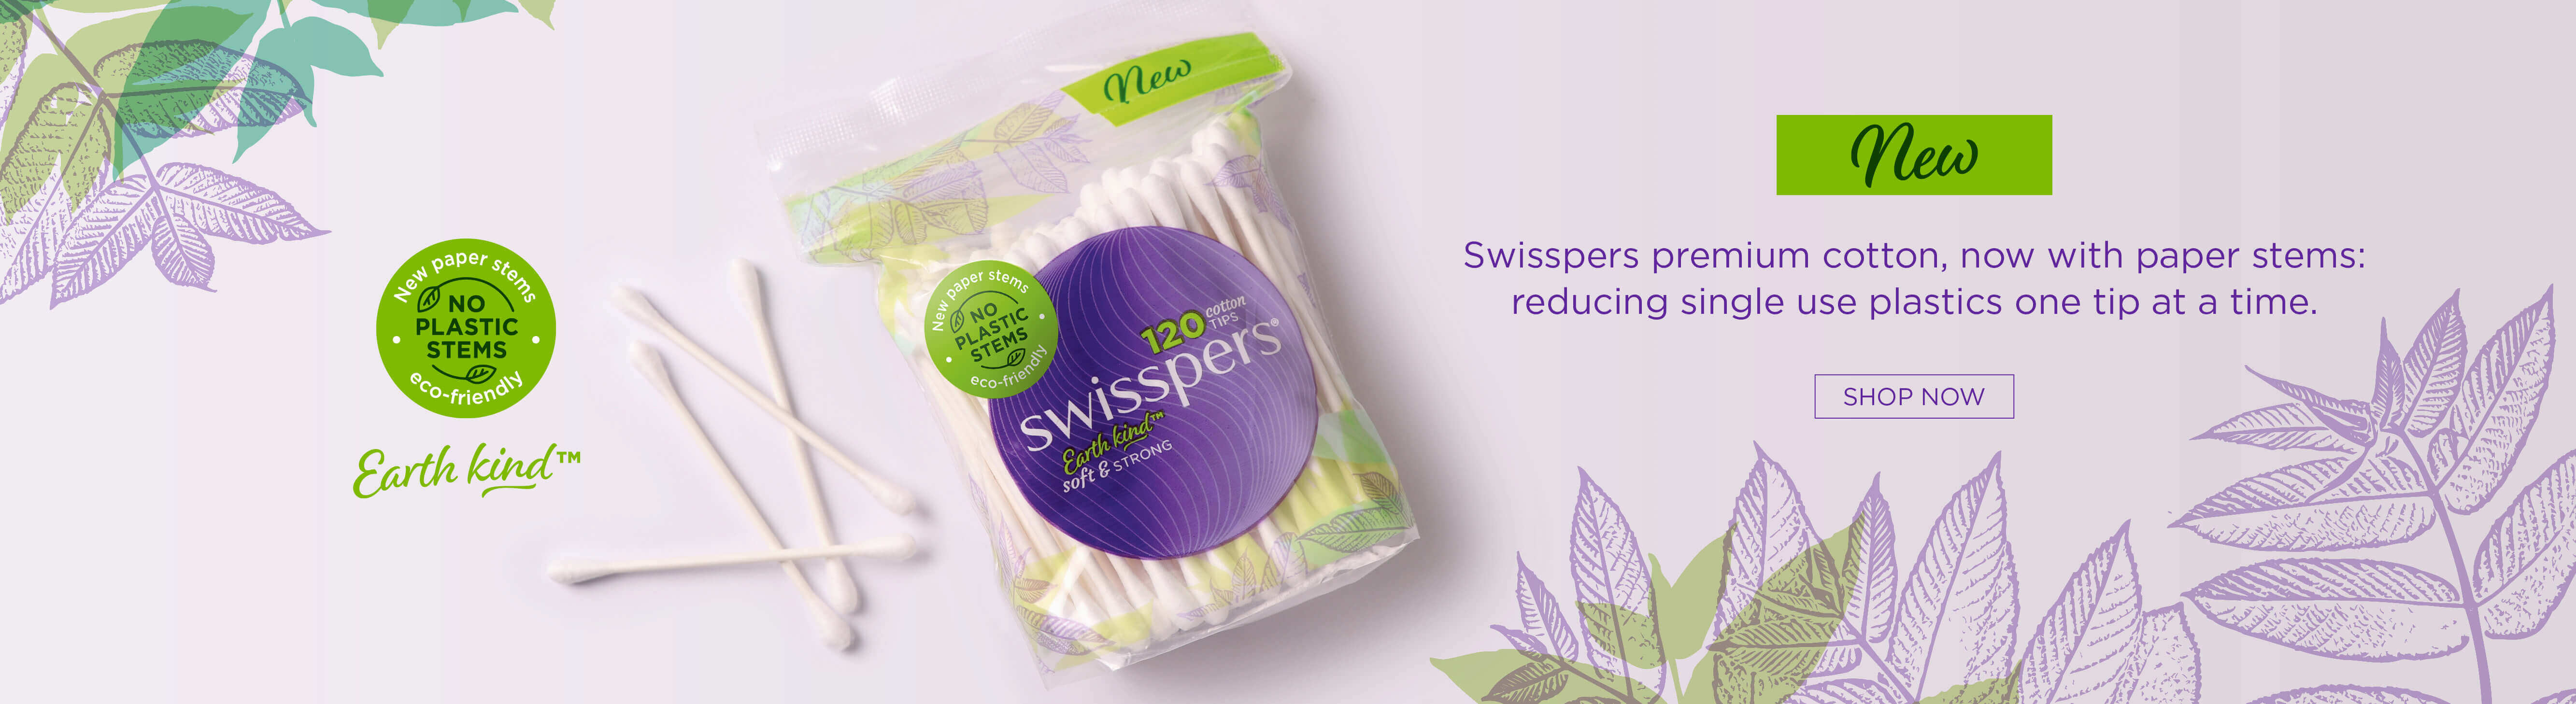 Swisspers premium cotton tips, now with paper stems.